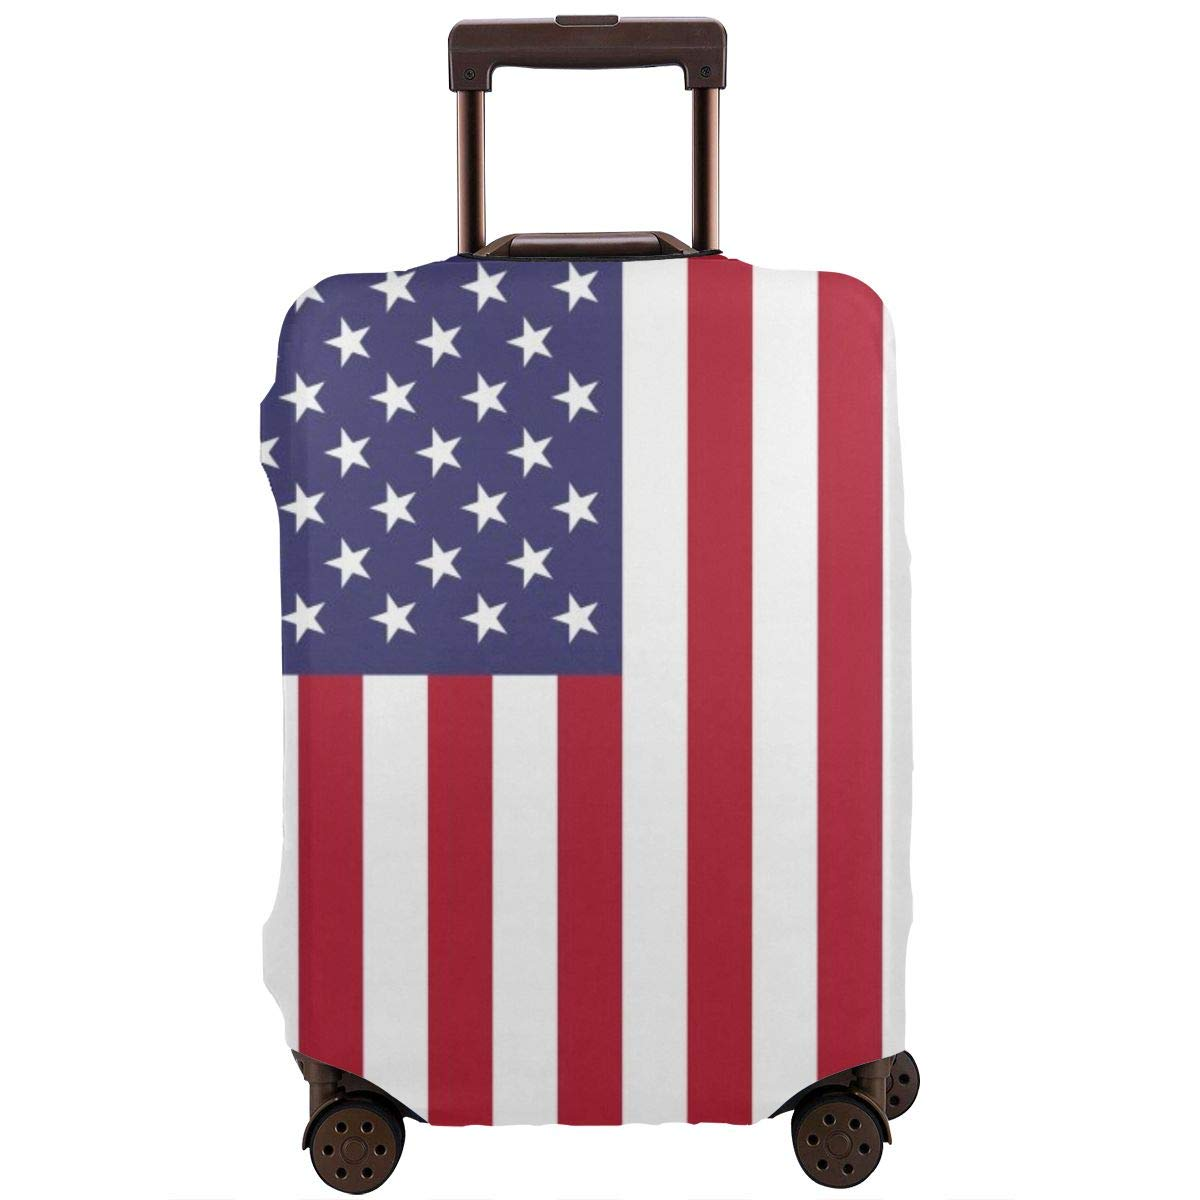 American Flag Elastic Travel Luggage Cover,Double Print Fashion Washable Suitcase Protective Cover Fits 18-32inch Luggage